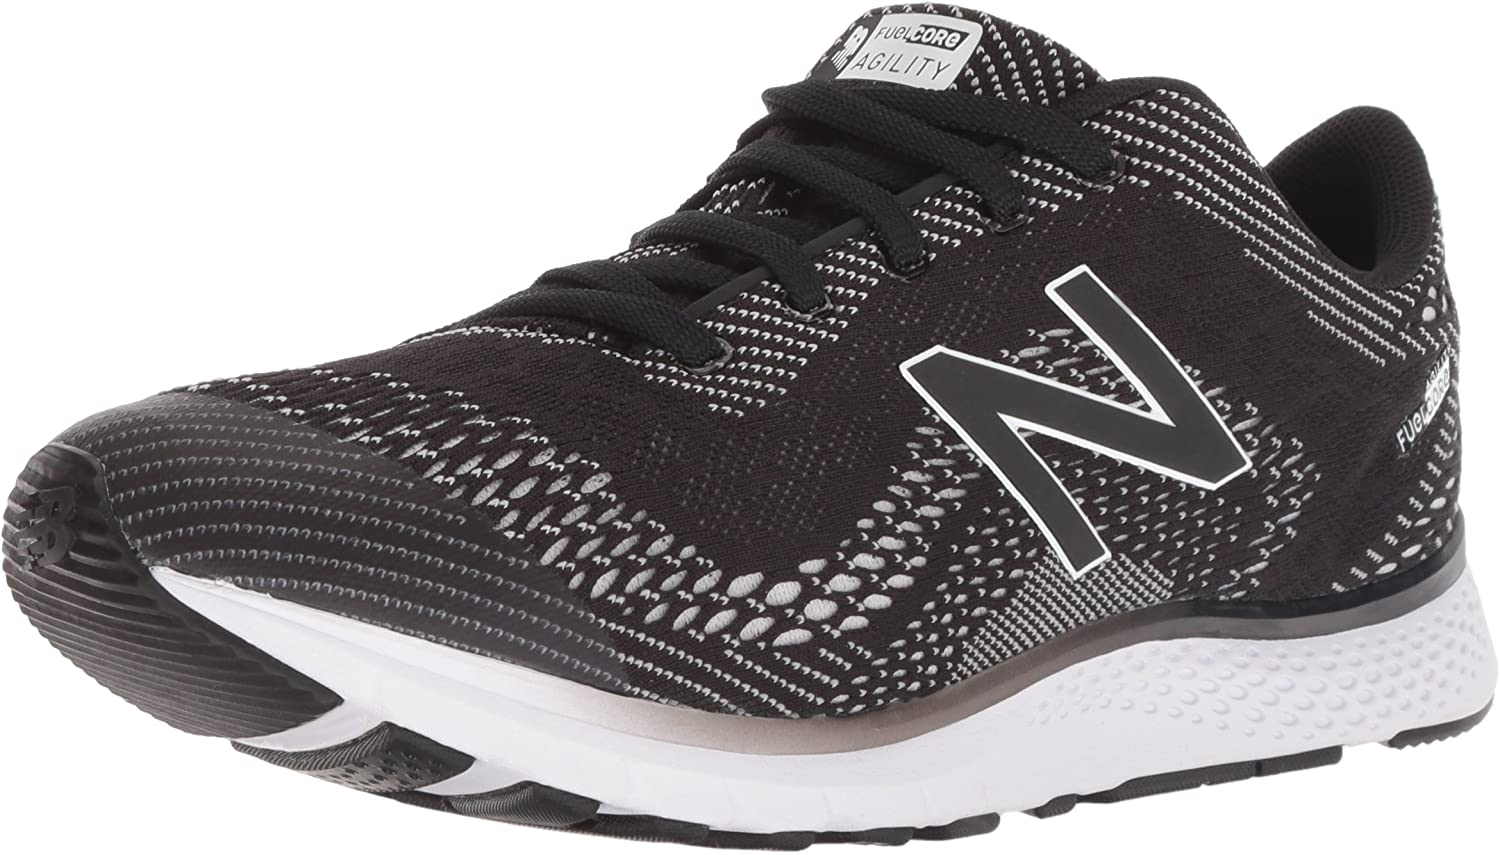 New Balance Women's Agility V2 FuelCore Cross Trainer